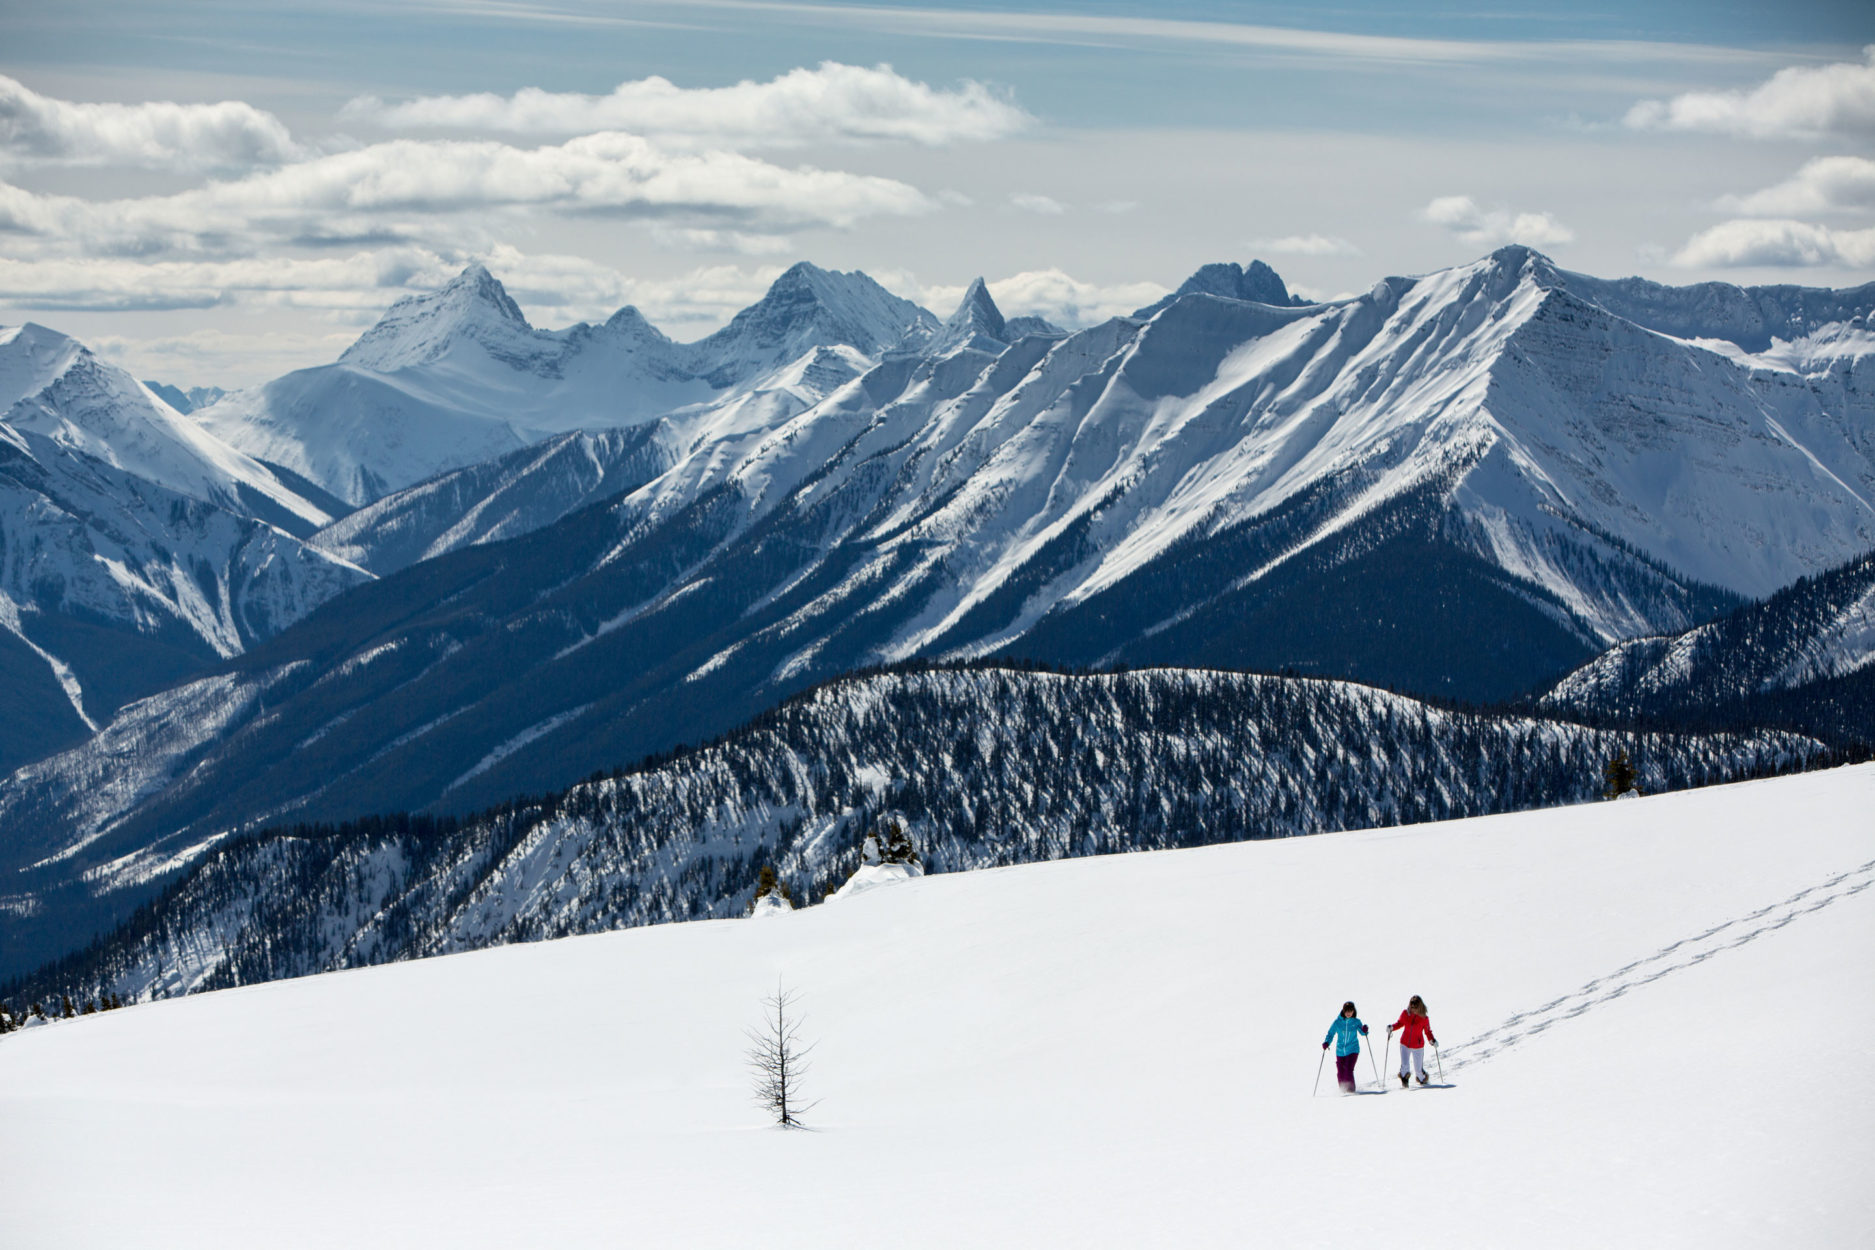 15 Things to do in the Mountains this Winter Without Skis Main Photo